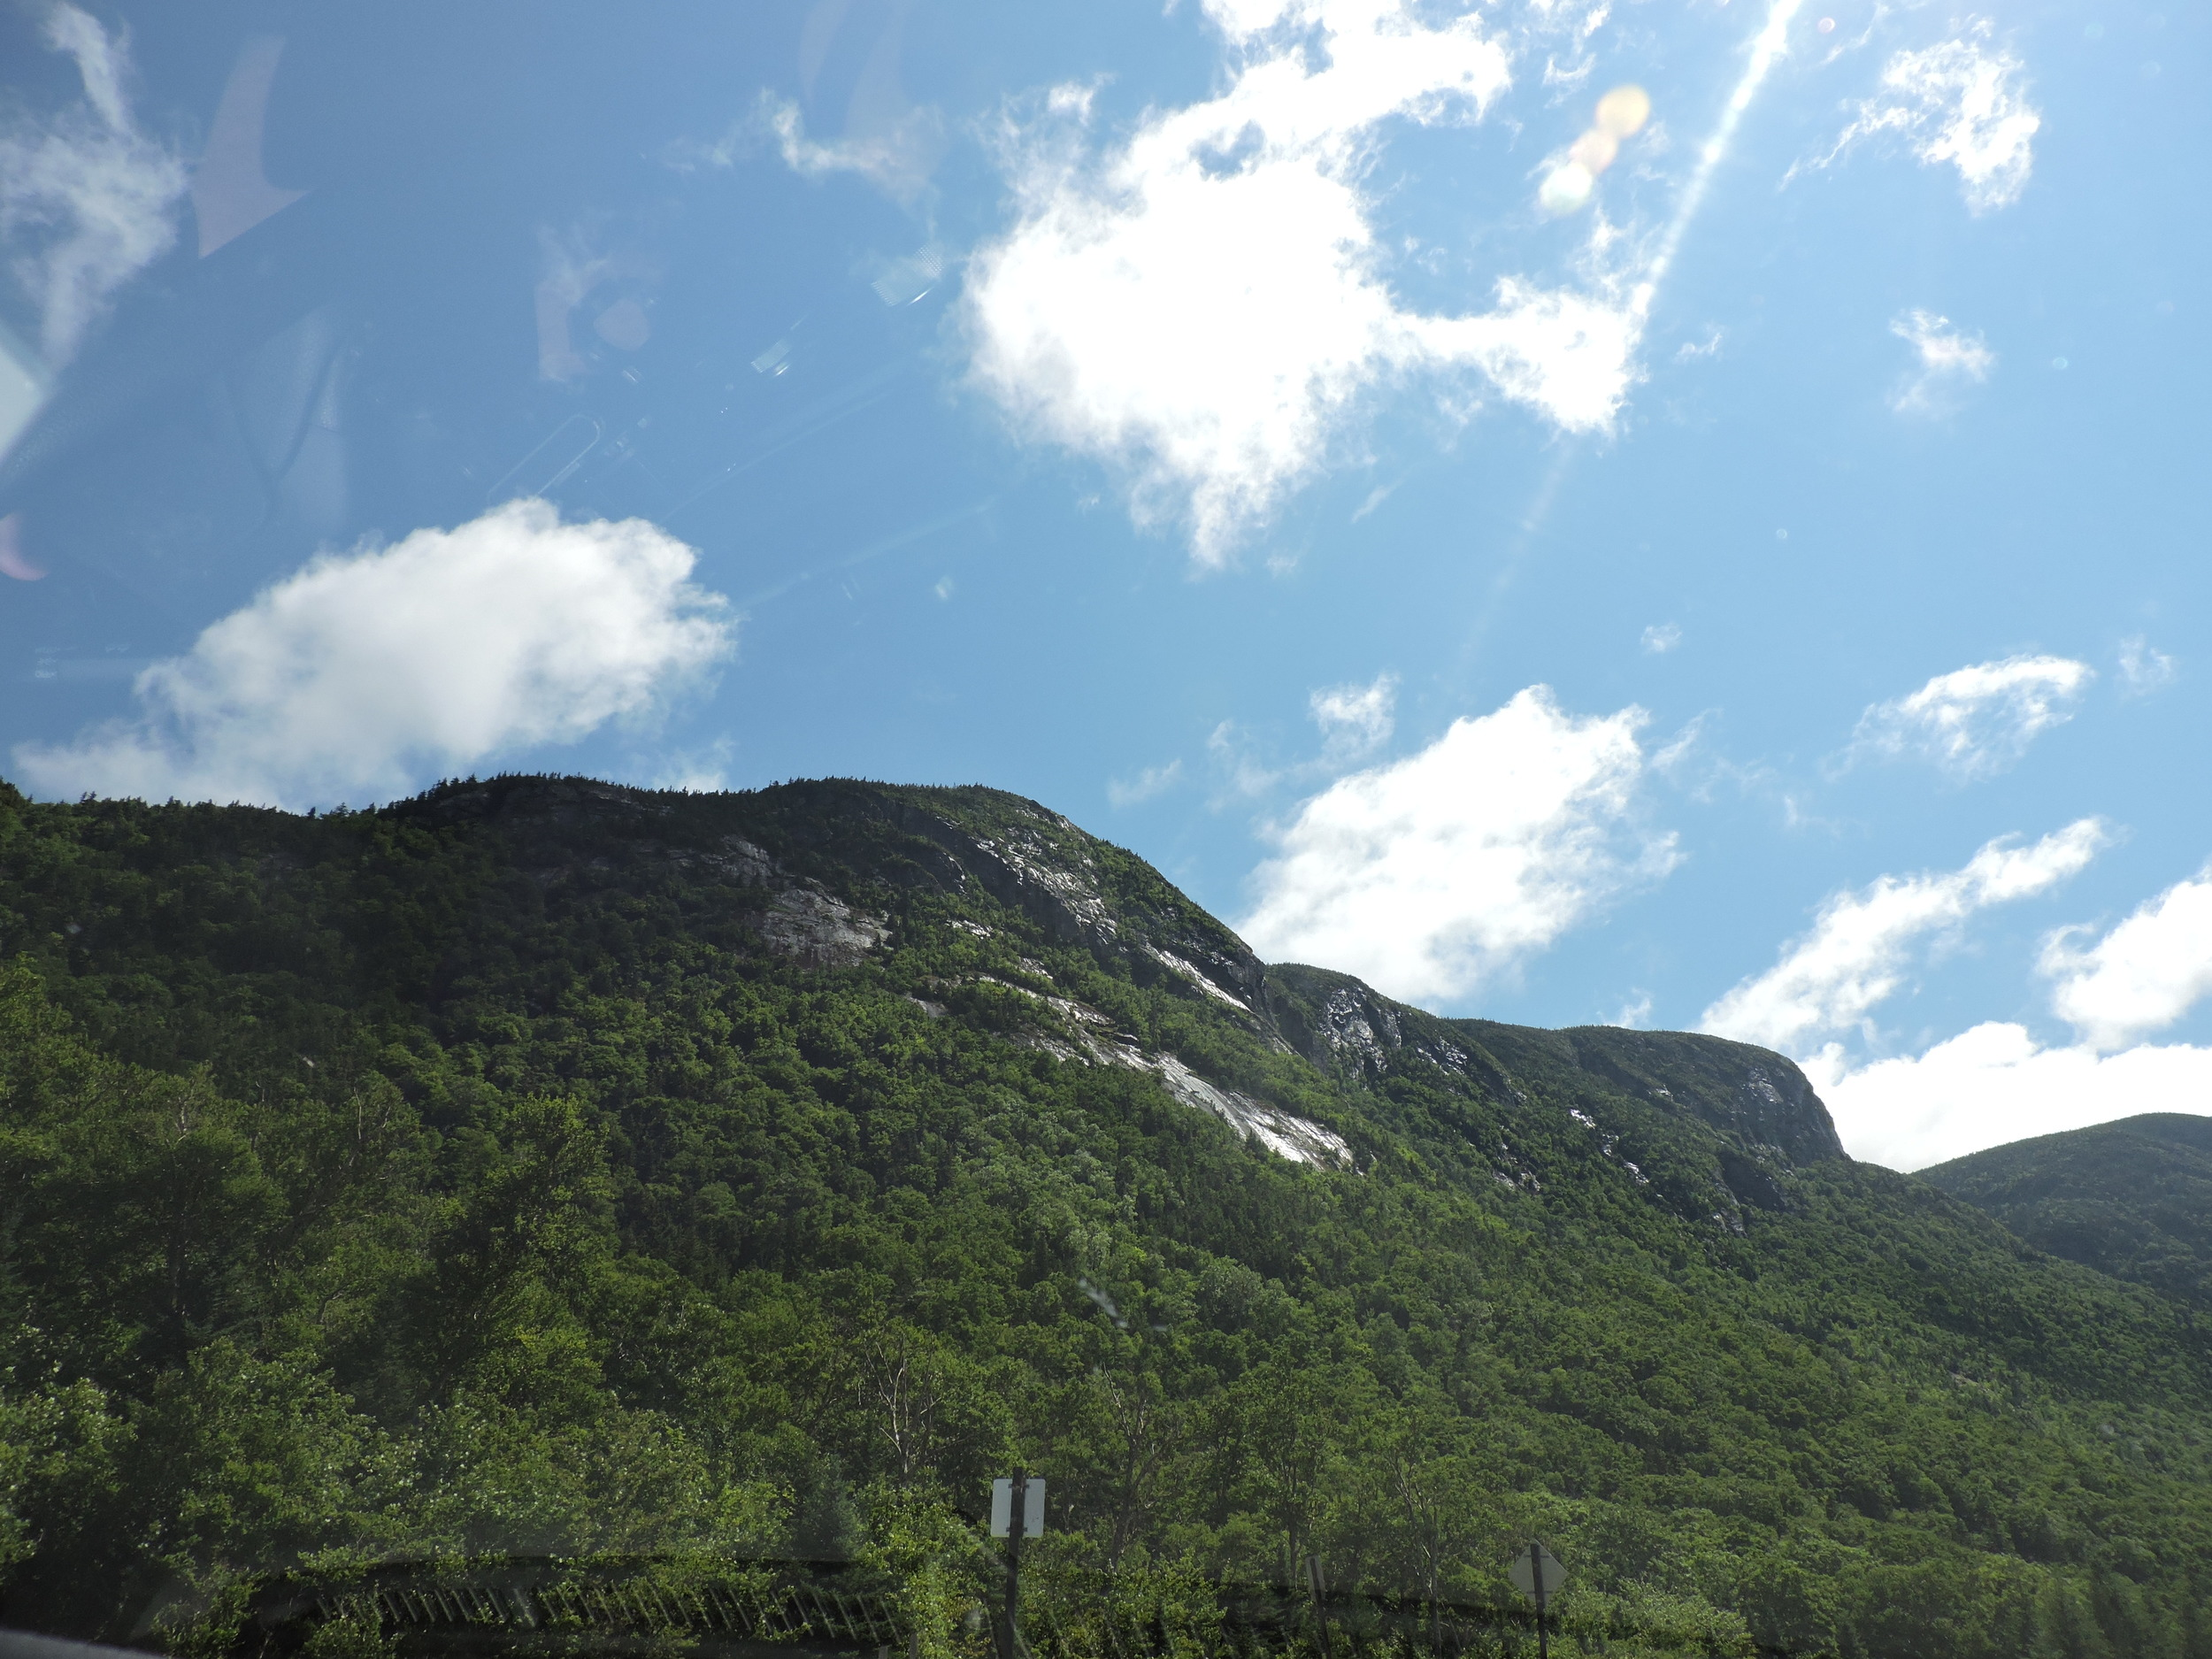 Franconia Notch is an 8-mile stretch between the Kinsman Range and Franconia Range.